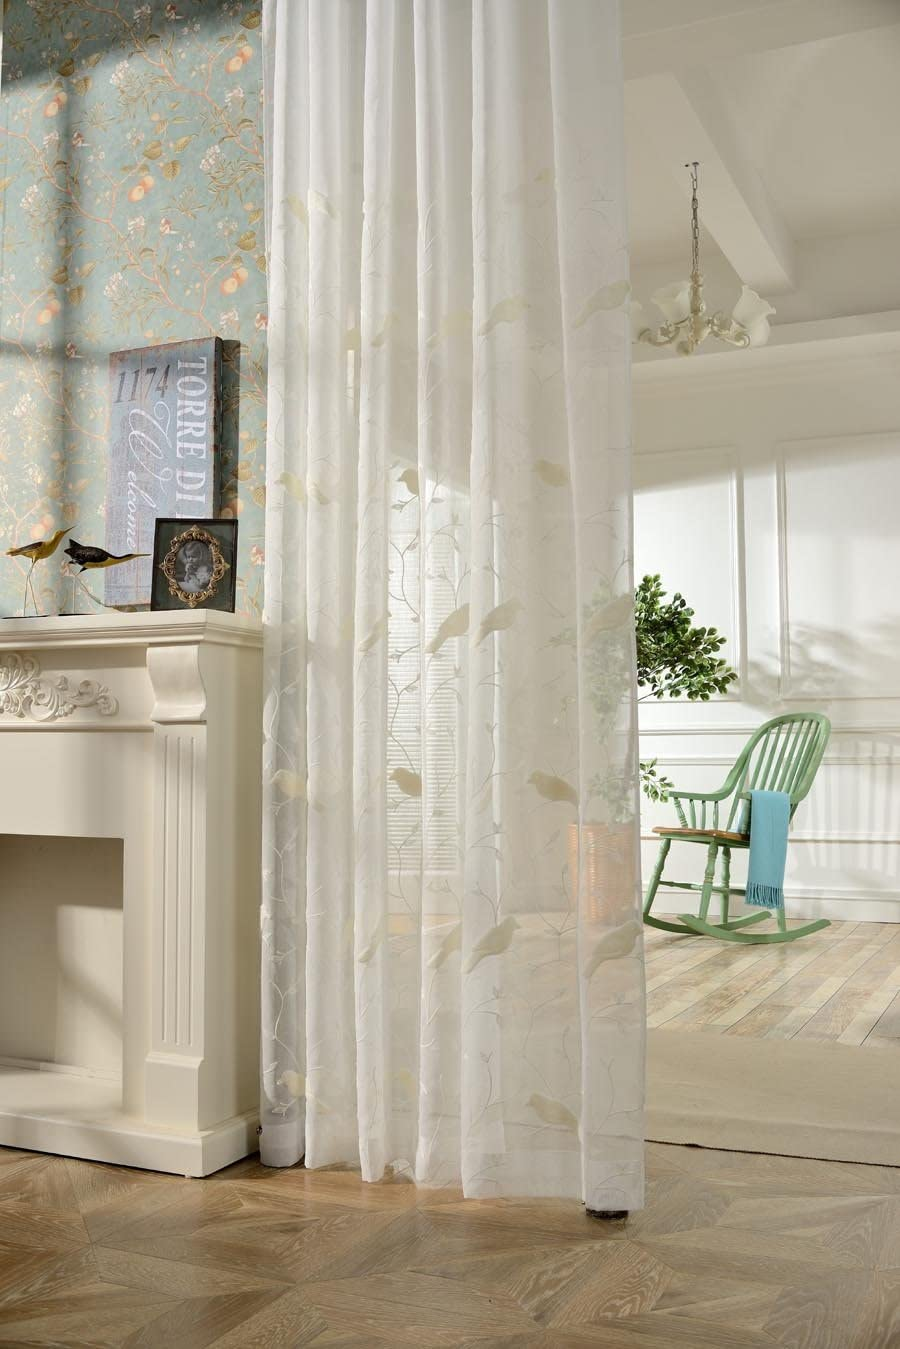 AliFish 1 Panel Birds and Trees Embroidered Decorative Sheer Curtains Home Fashion Window Traetment Elegant Country Style Voile Yarn Gauze Drape Panels for Kids Room Living Room W39 x L96 inch